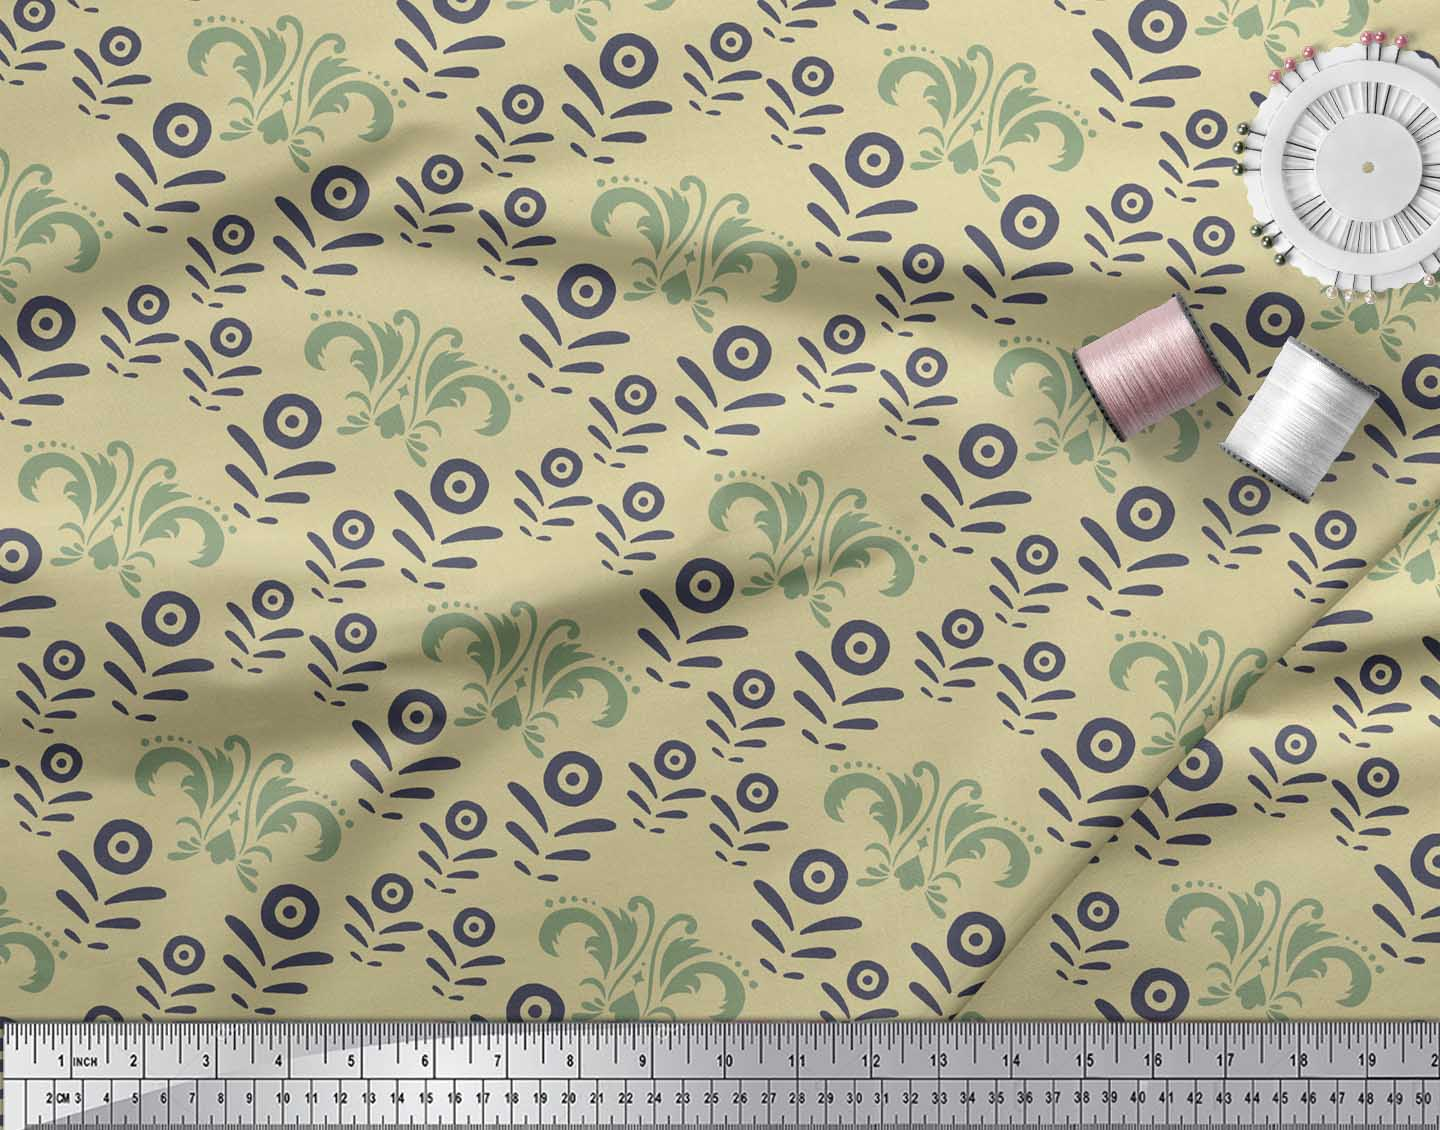 Soimoi-Beige-Cotton-Poplin-Fabric-Filigree-Damask-Print-Fabric-by-xVG thumbnail 3